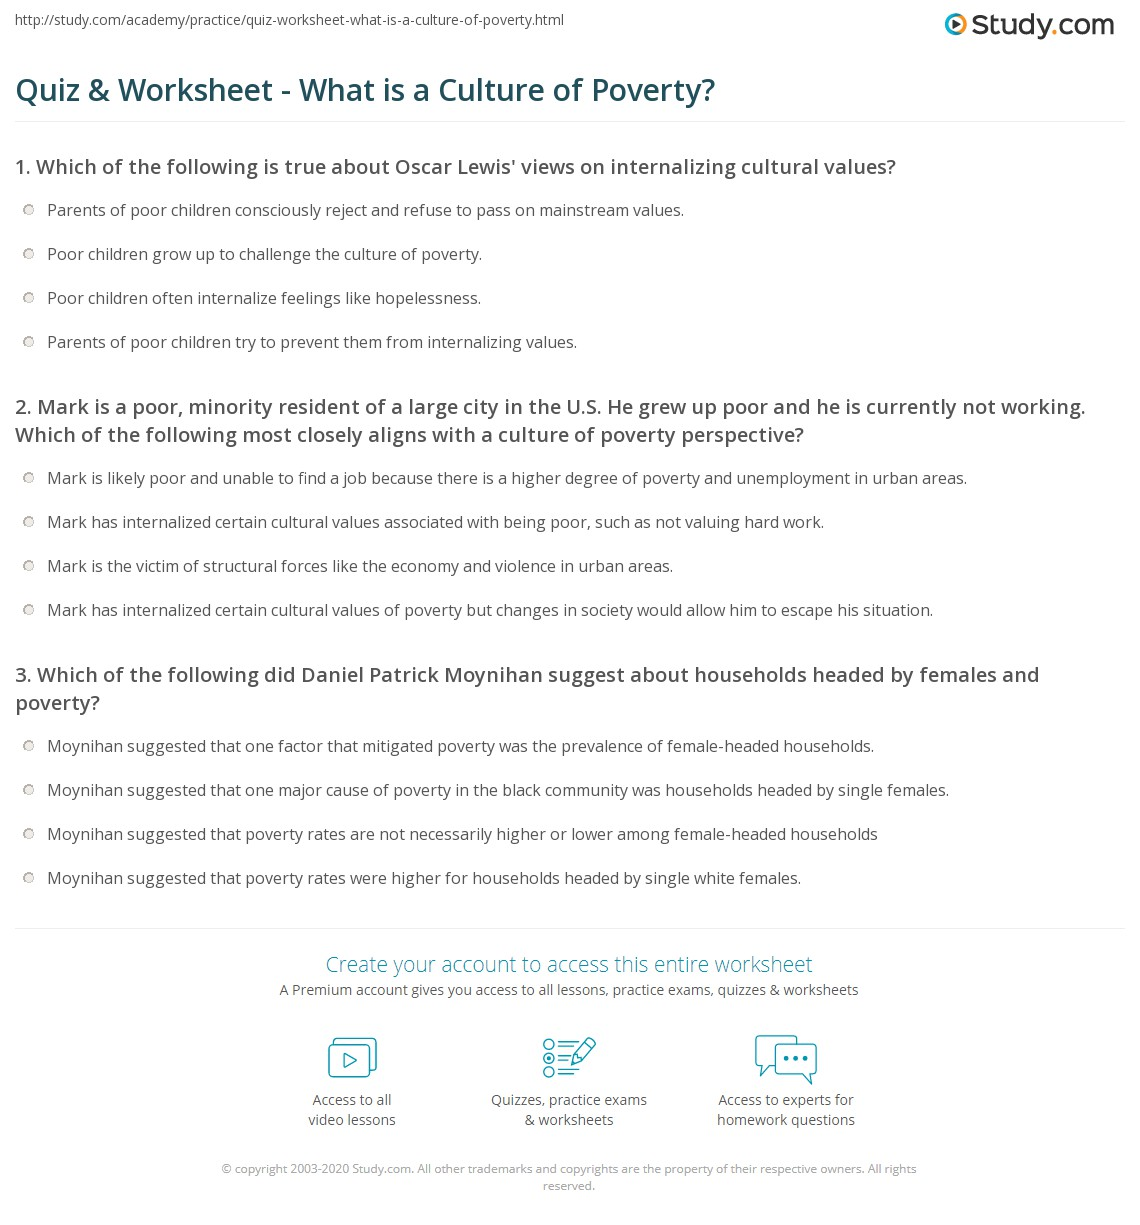 quiz worksheet what is a culture of poverty com mark is a poor minority resident of a large city in the u s he grew up poor and he is currently not working which of the following most closely aligns